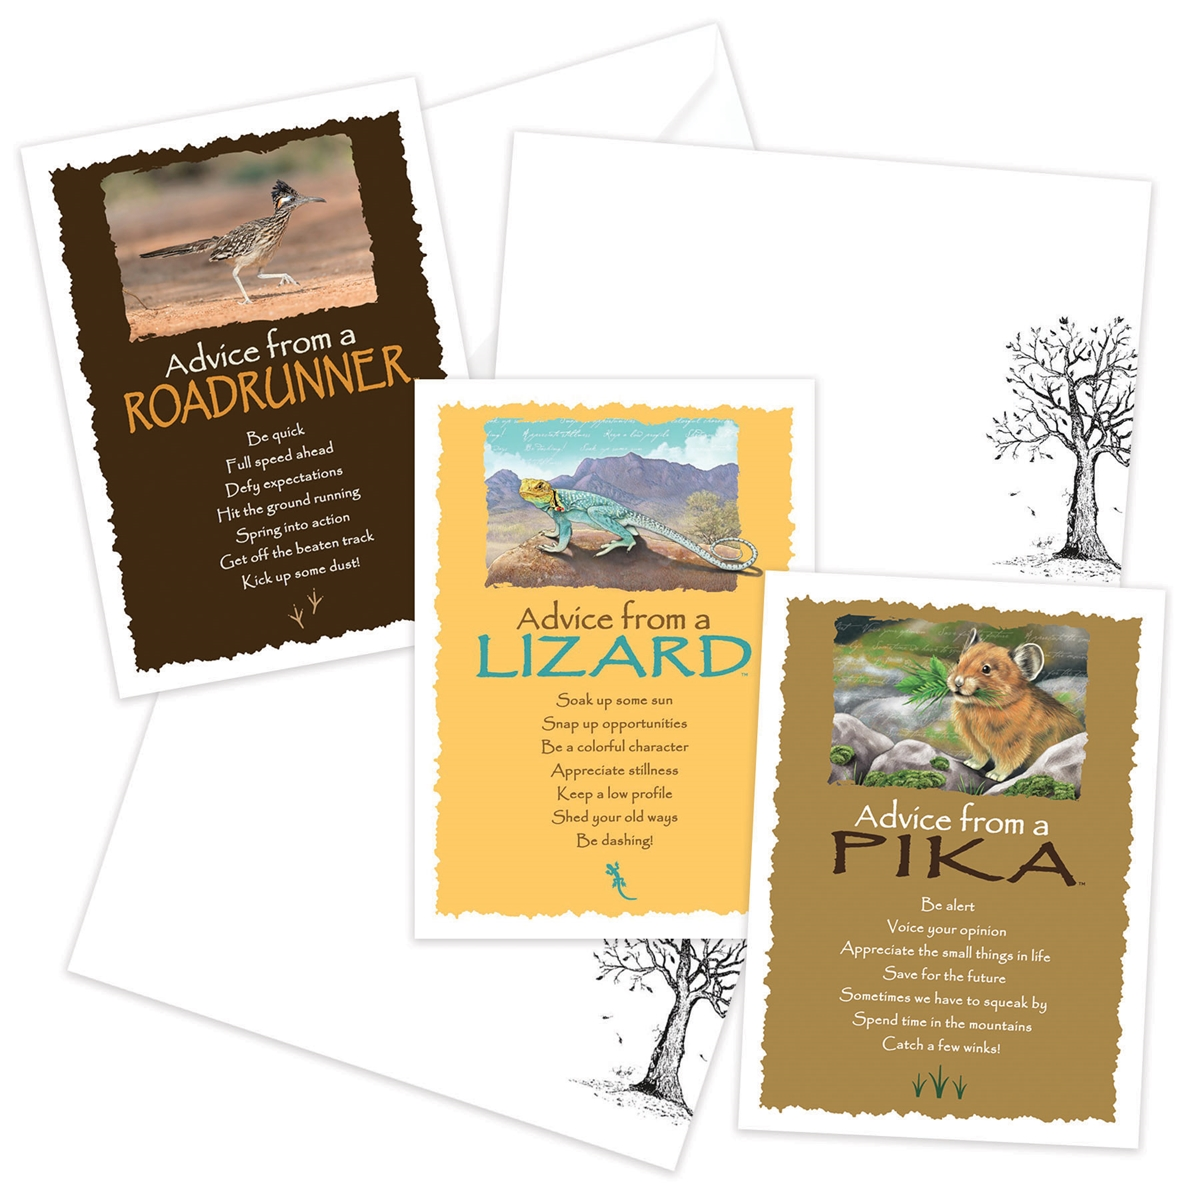 Advice from the Lizard, Pika and Roadrunner Greeting Cards